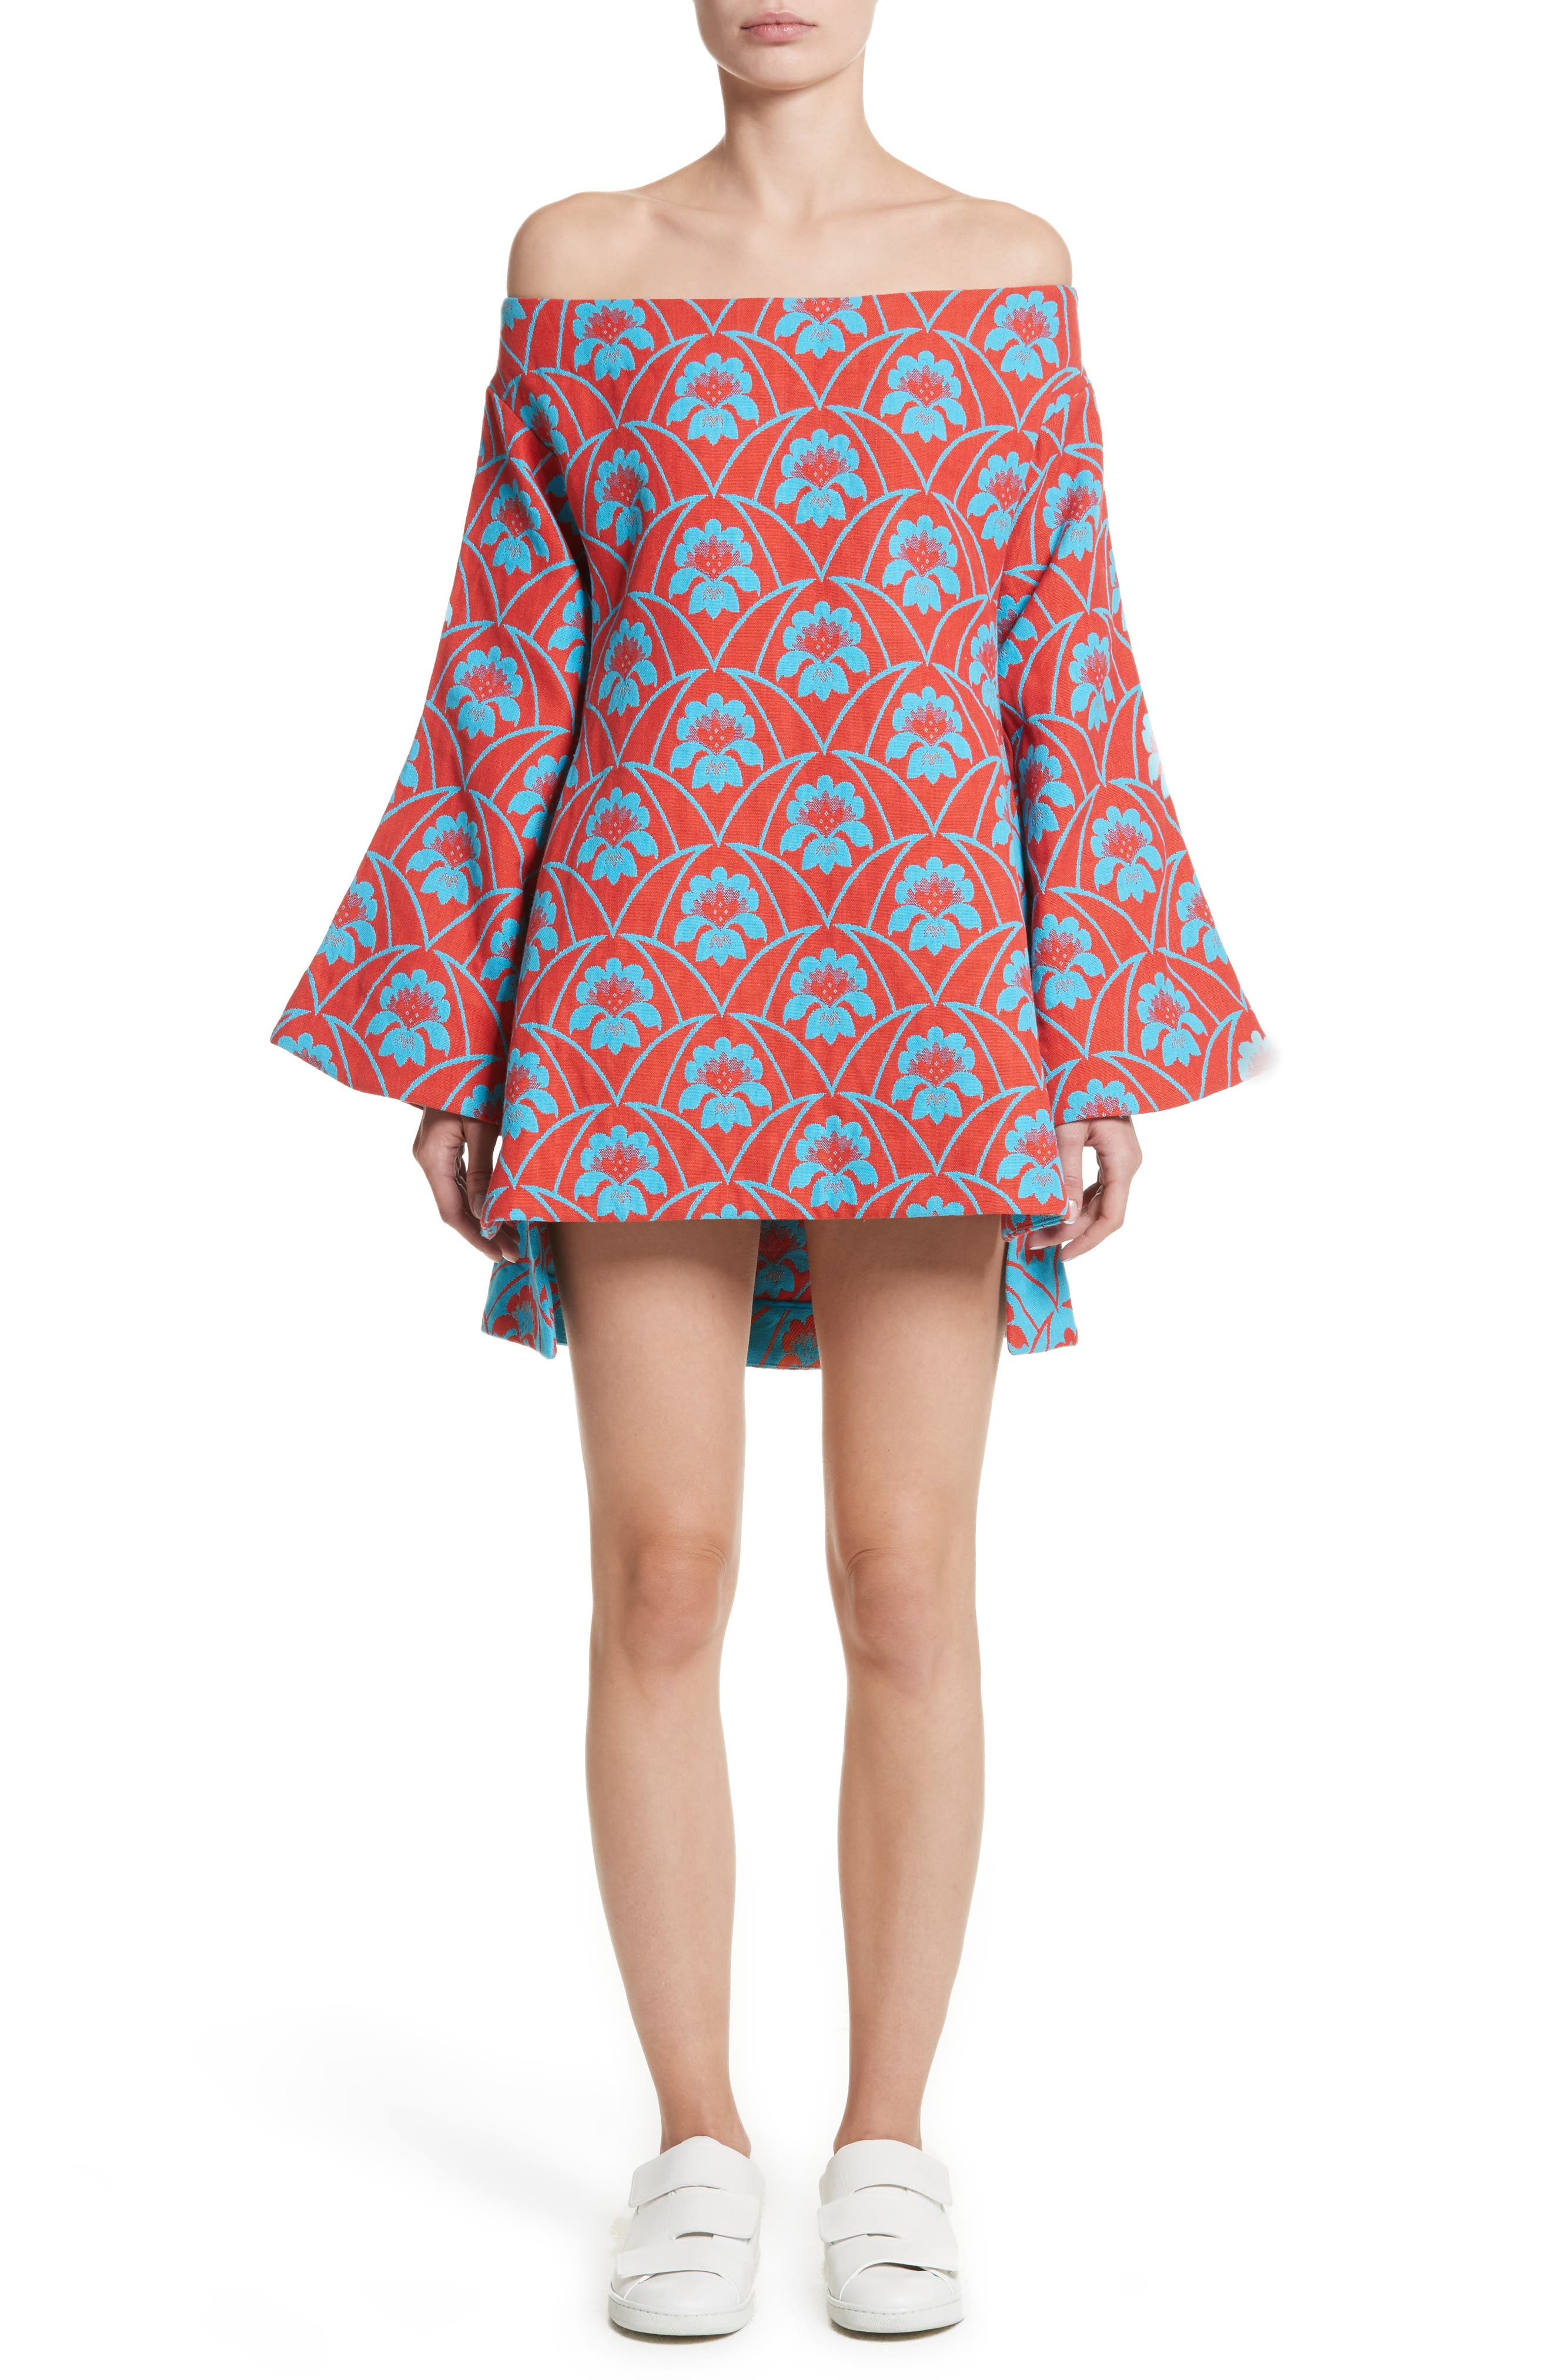 Alternate Image 1 Selected - Richard Malone Off the Shoulder Minidress (Nordstrom Exclusive)